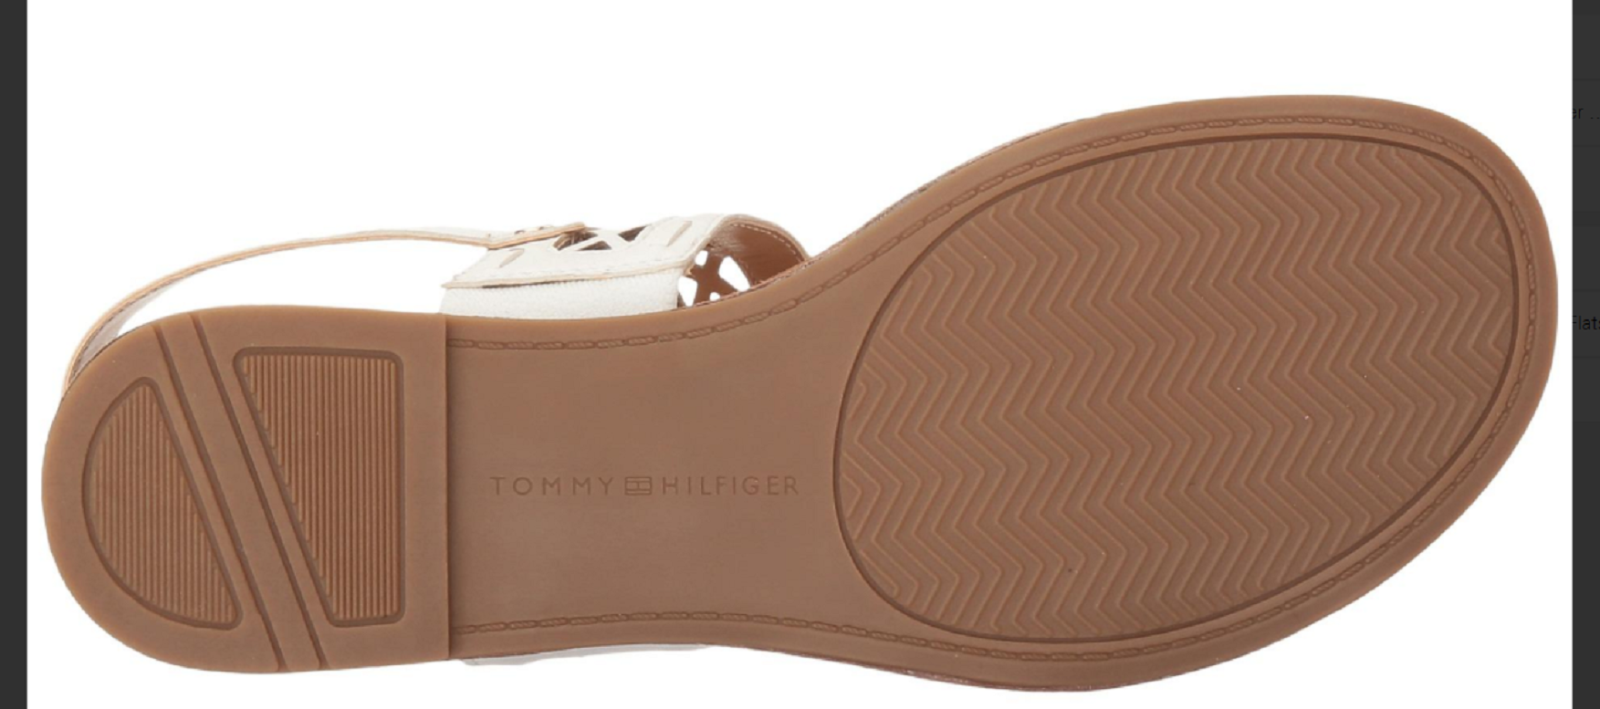 Tommy Hilfiger Women's Lunia Ankle-High Sandal size 7